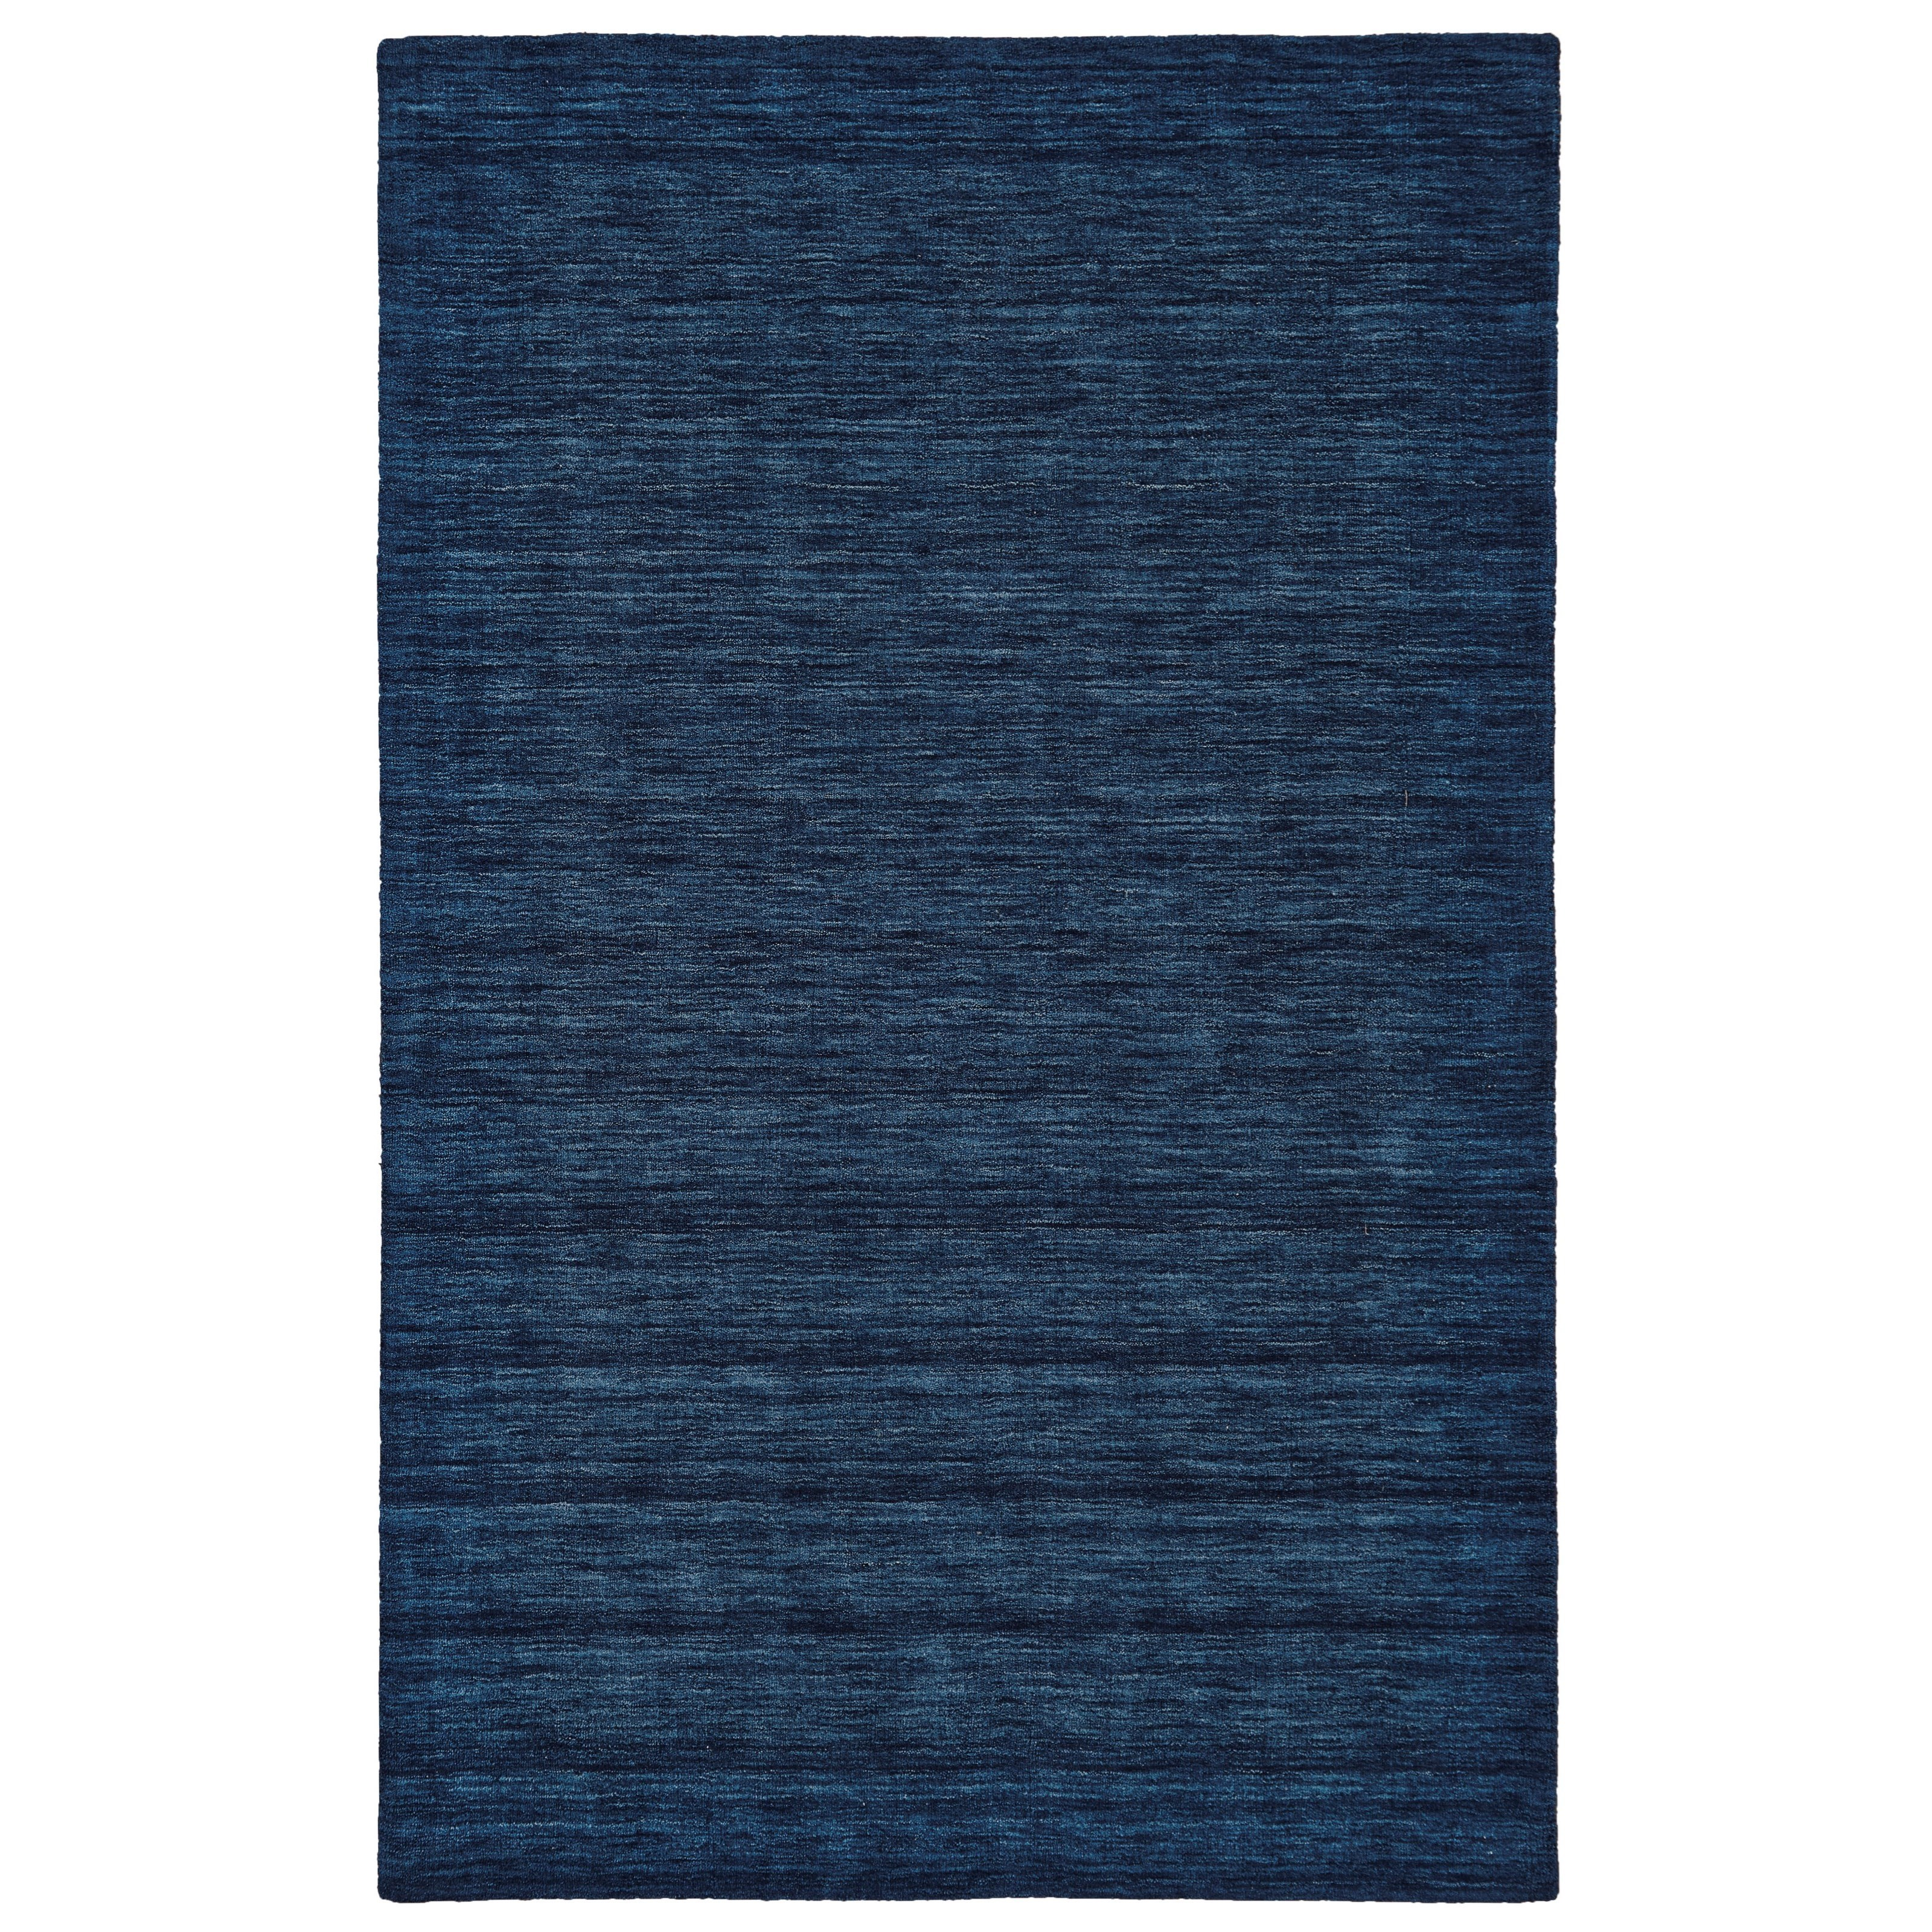 Luna Dark Blue 8' X 11' Area Rug by Feizy Rugs at Jacksonville Furniture Mart